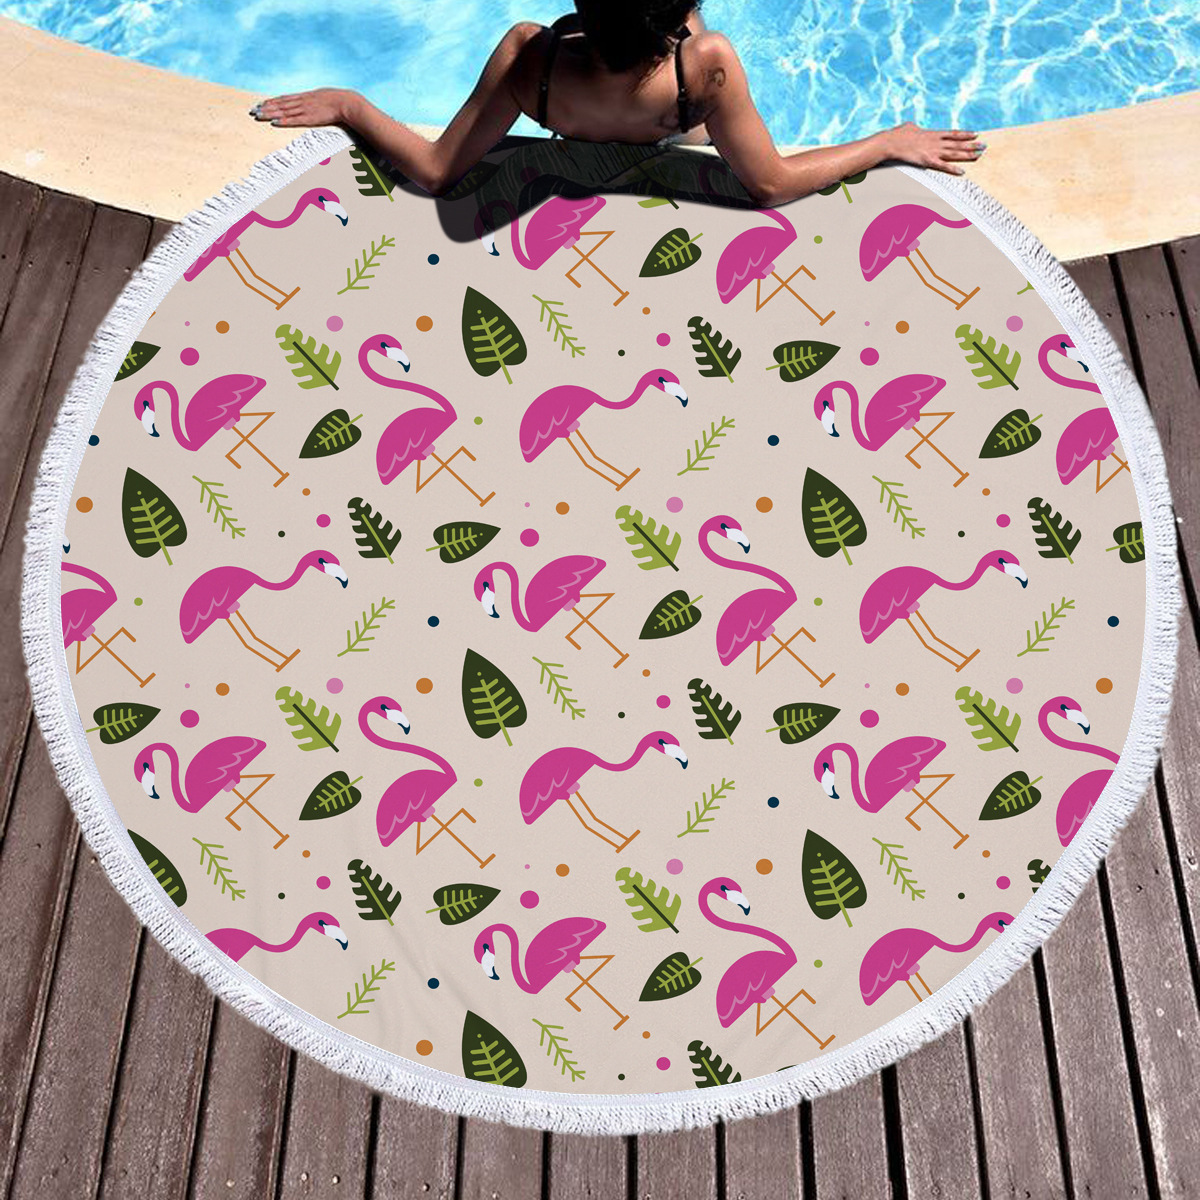 Hot selling custom your own pattern colorful round beach towels microfiber fabric gift beach towel